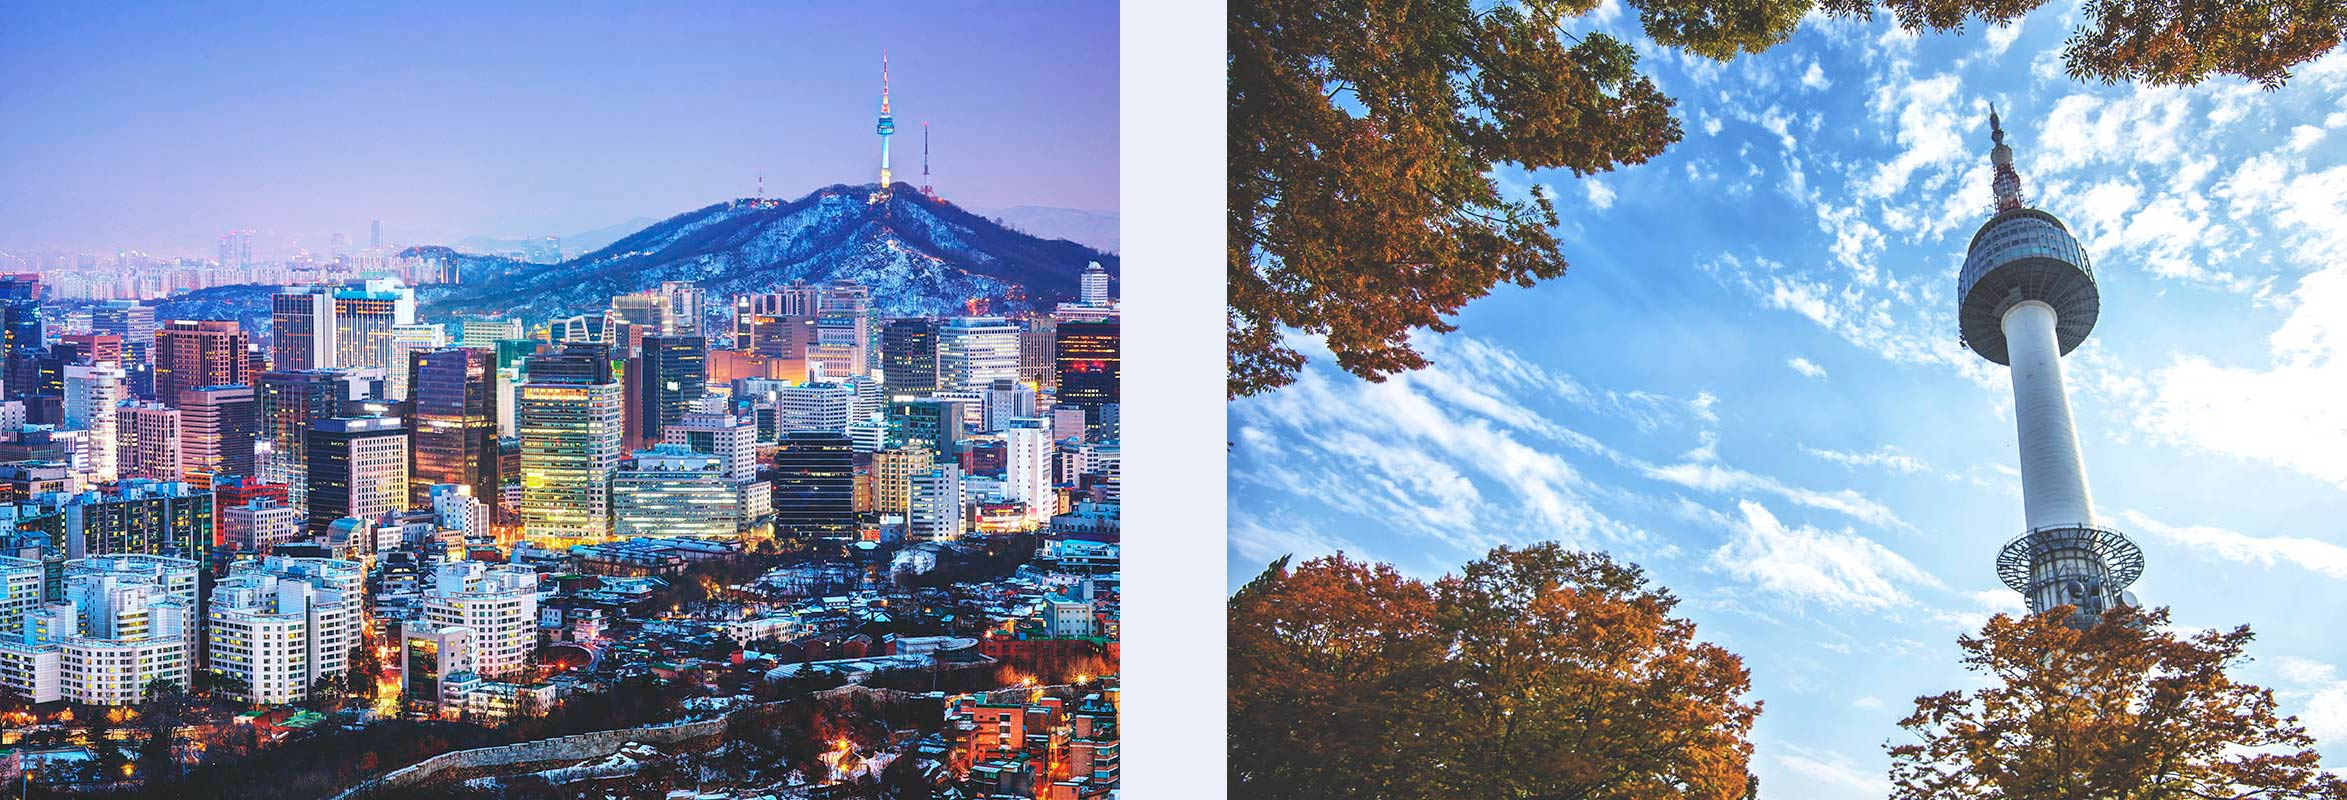 seoul_south_korea_combined_123_thinkstock